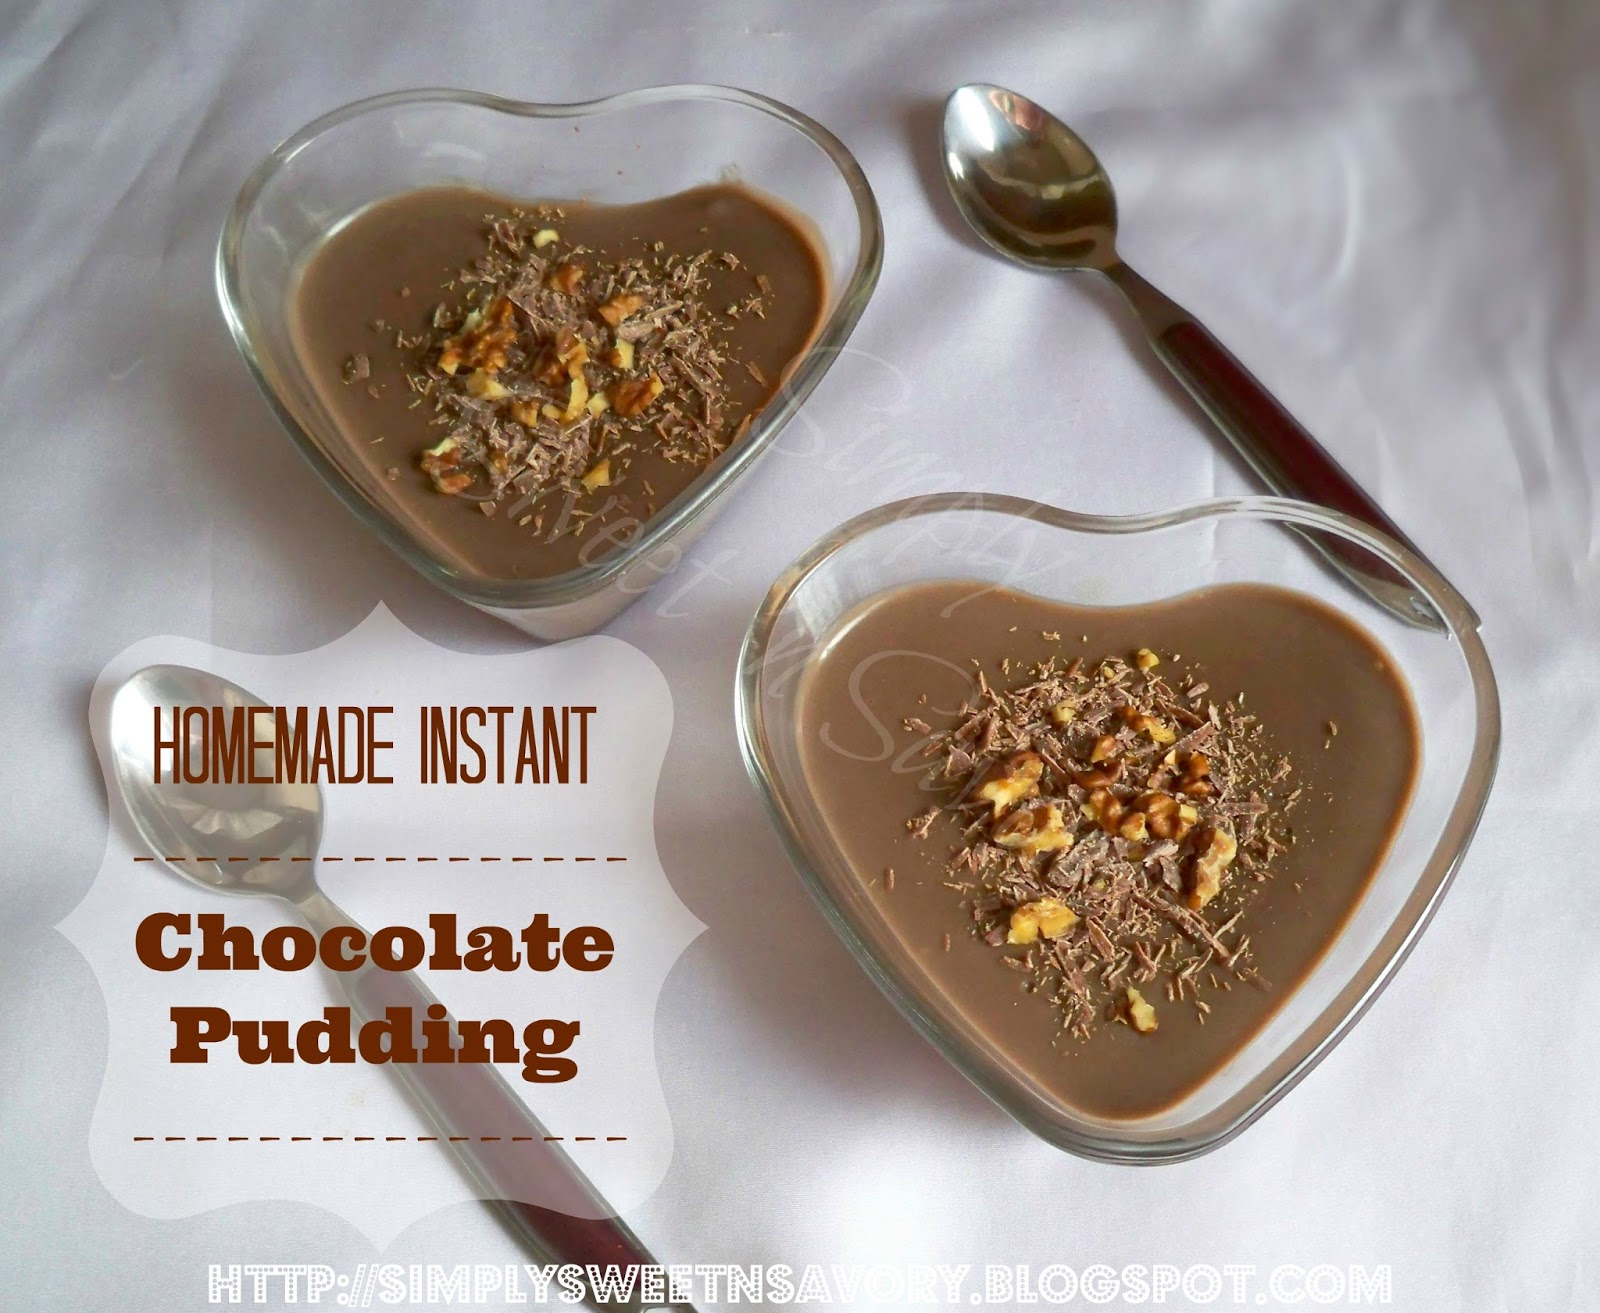 Homemade Instant Chocolate Pudding ... Quick, easy and simple to ...